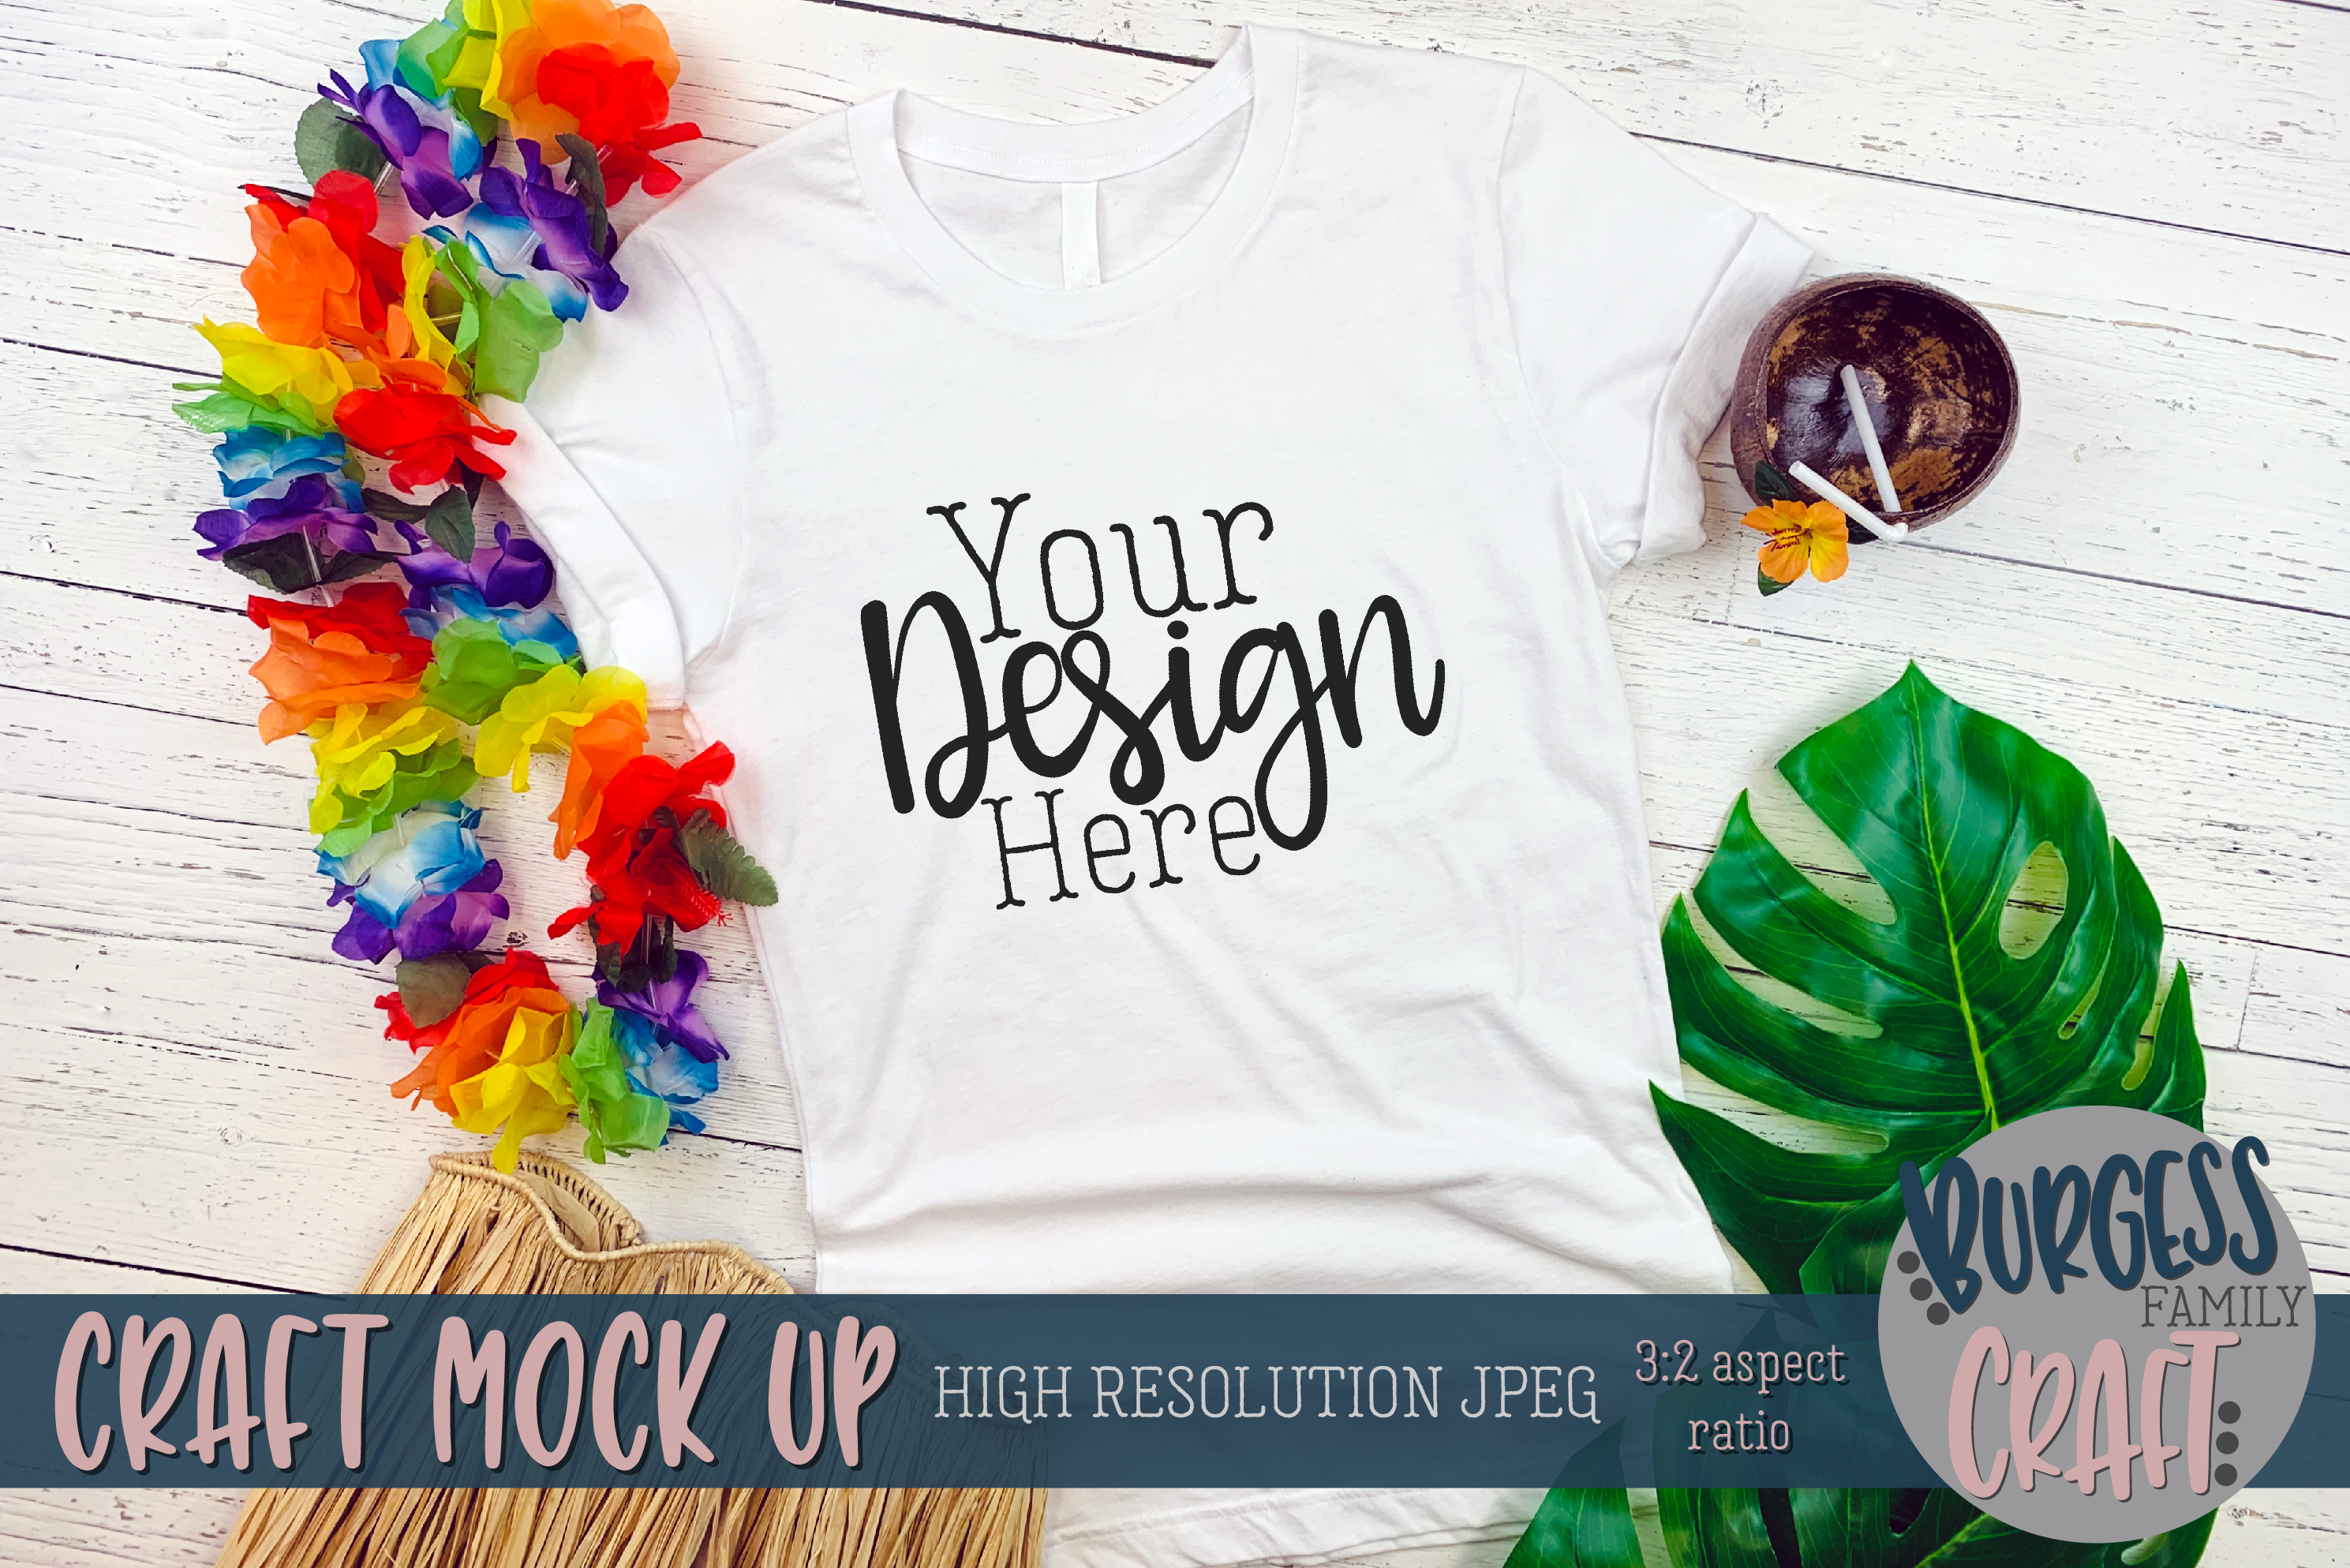 Beach white shirt Craft mock up | High Resolution JPEG example image 1